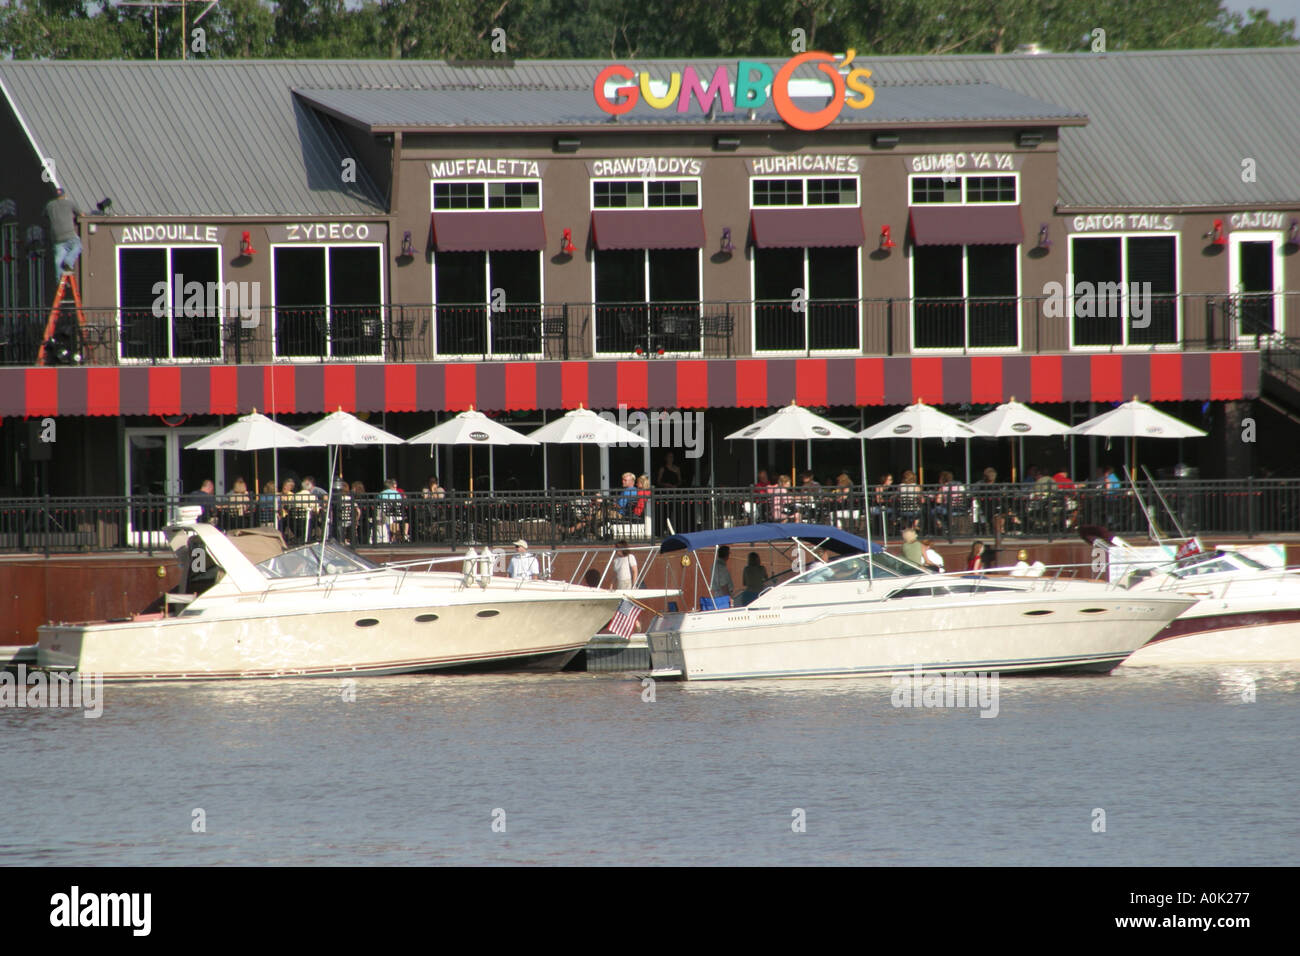 Toledo Ohio The Docks Gumbos Bayou Grill Restaurant Boats Yachts